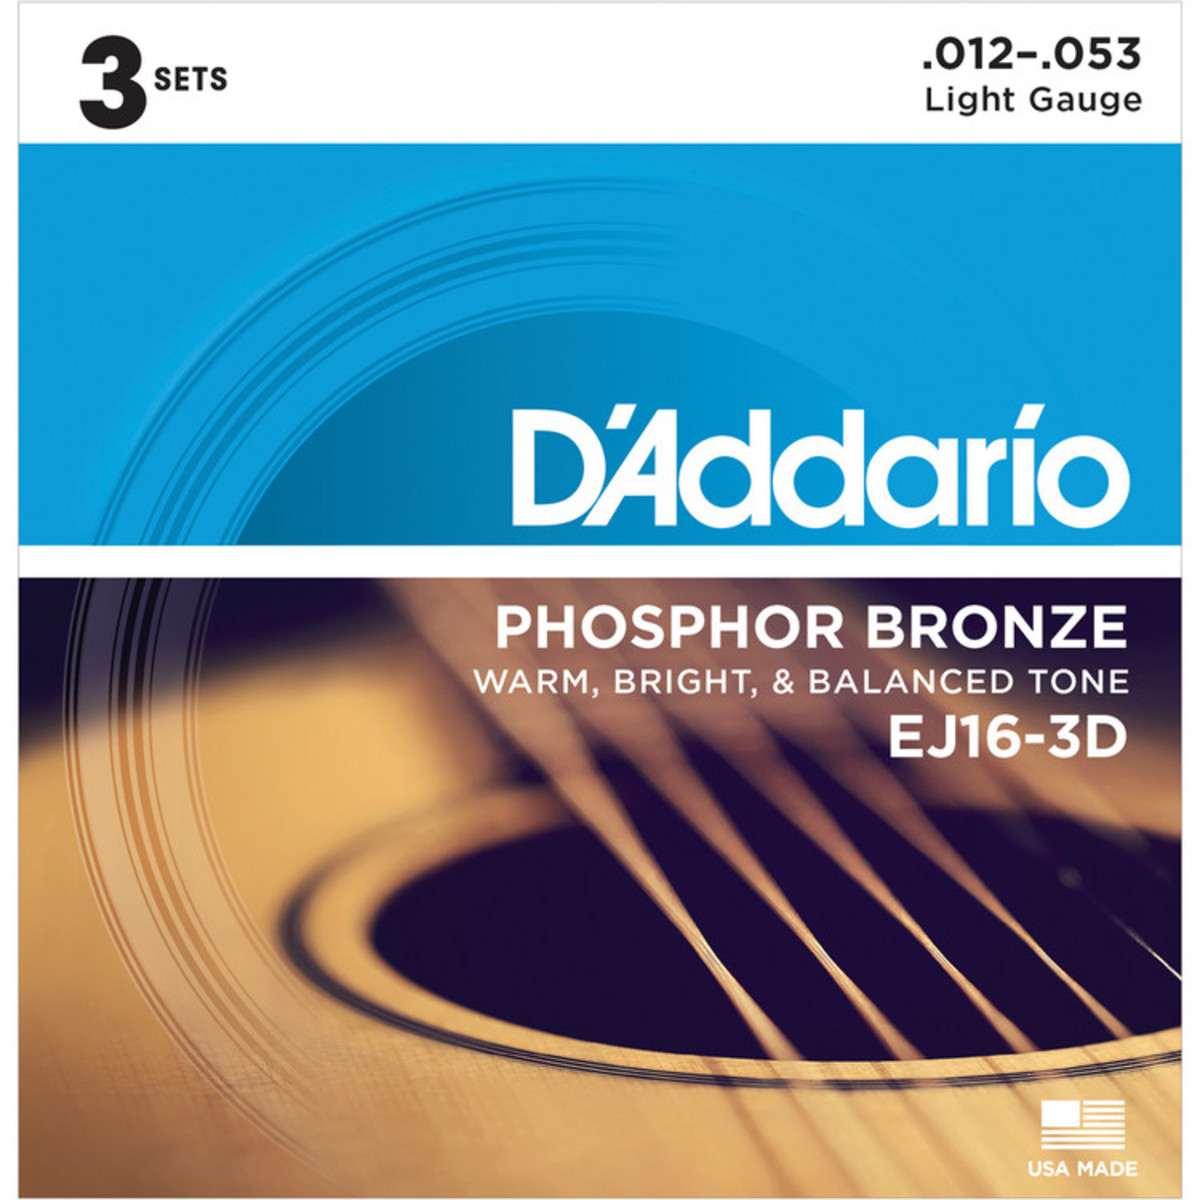 Image of DAddario EJ16 Phosphor Bronze Light 12-53 x 3 Pack